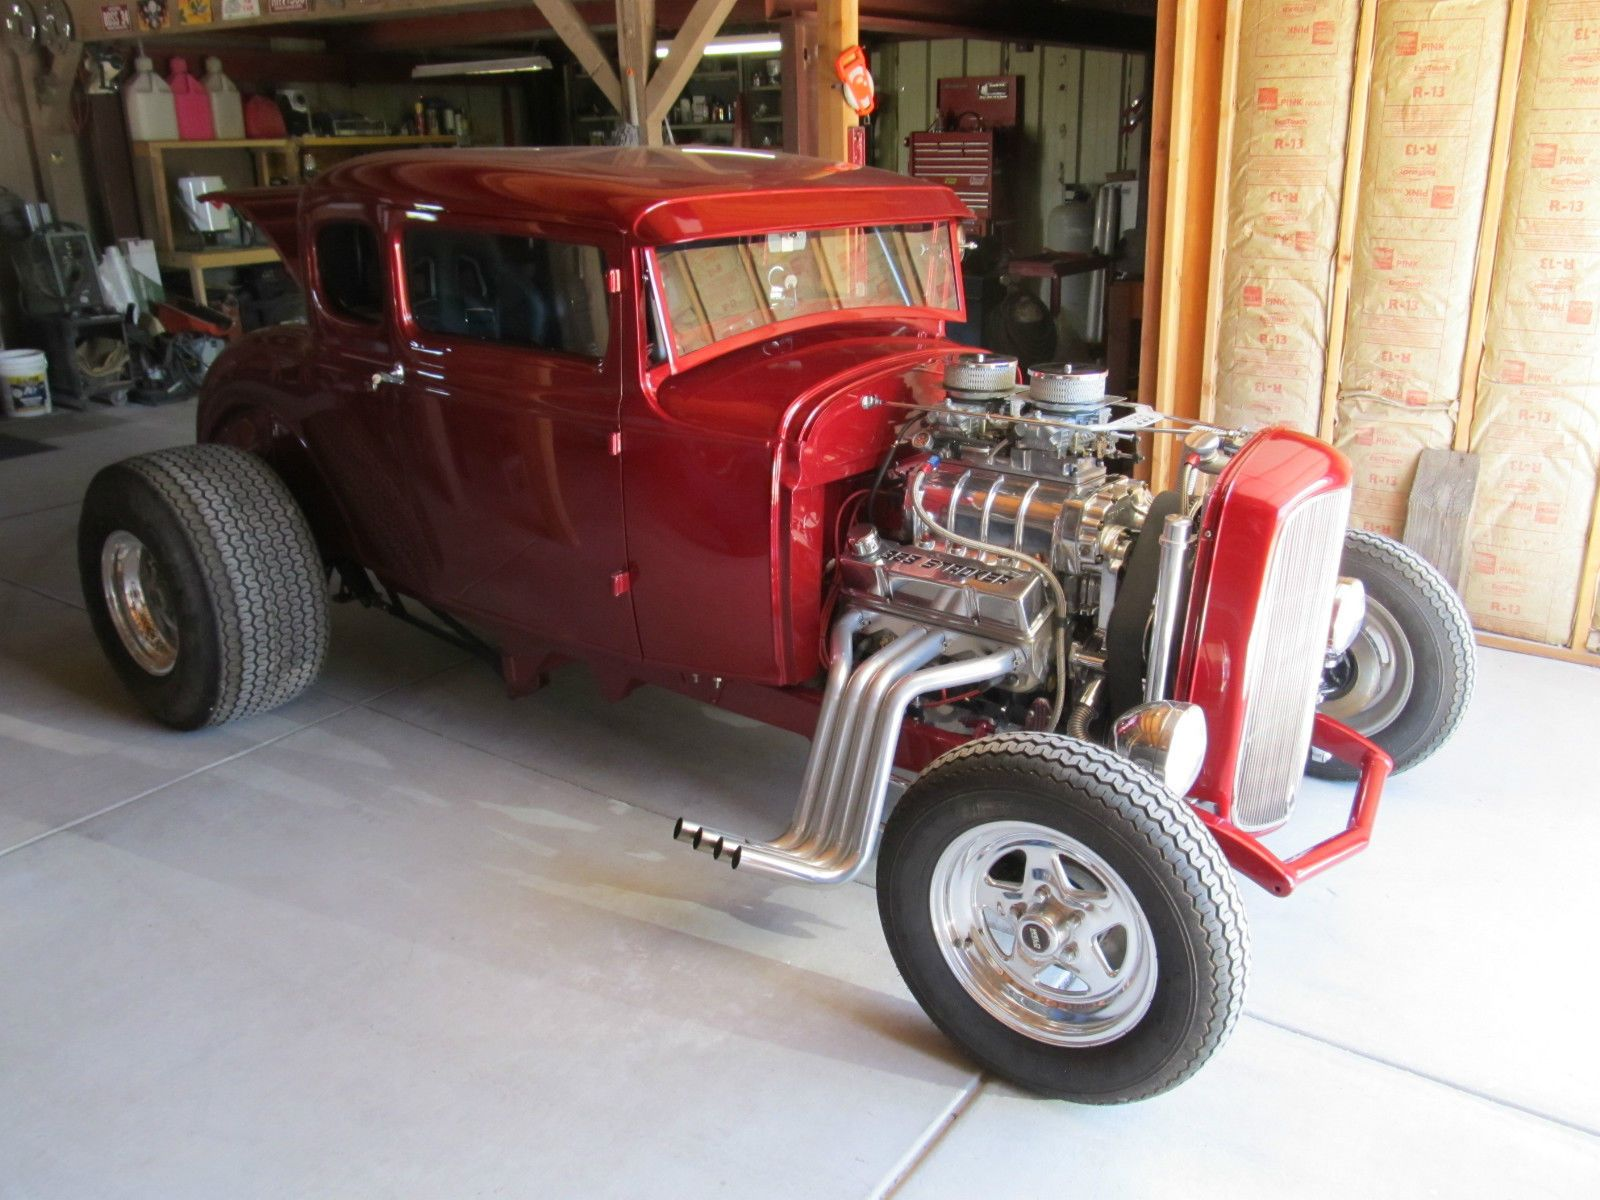 1931 Ford Model A hot rod streed rod | Hot rods for sale | Pinterest ...